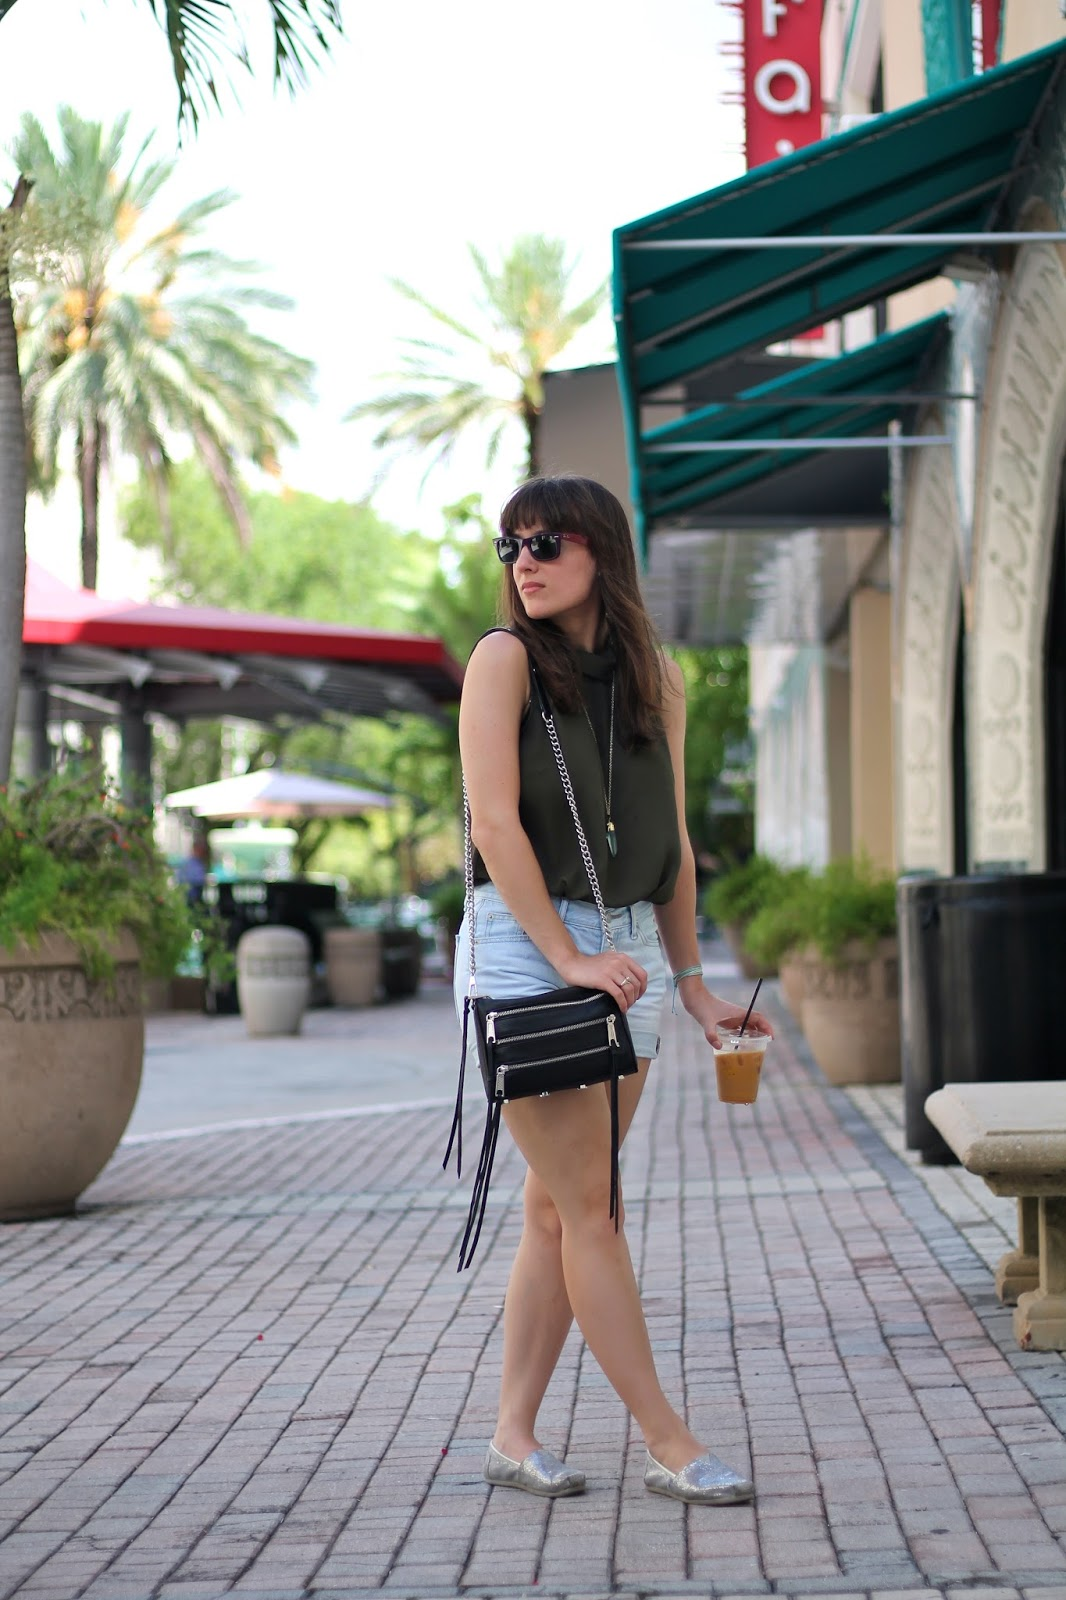 Miami fashion blogger, Miami style, what I wore, style blogger, fashion blogger, summer style, outfit ideas, Rebecca Minkoff, forever 21, Gap, TOMS, The HiRode, Ray-Ban, Nordstrom Rack, summer outfits, summer looks, Miami blogger